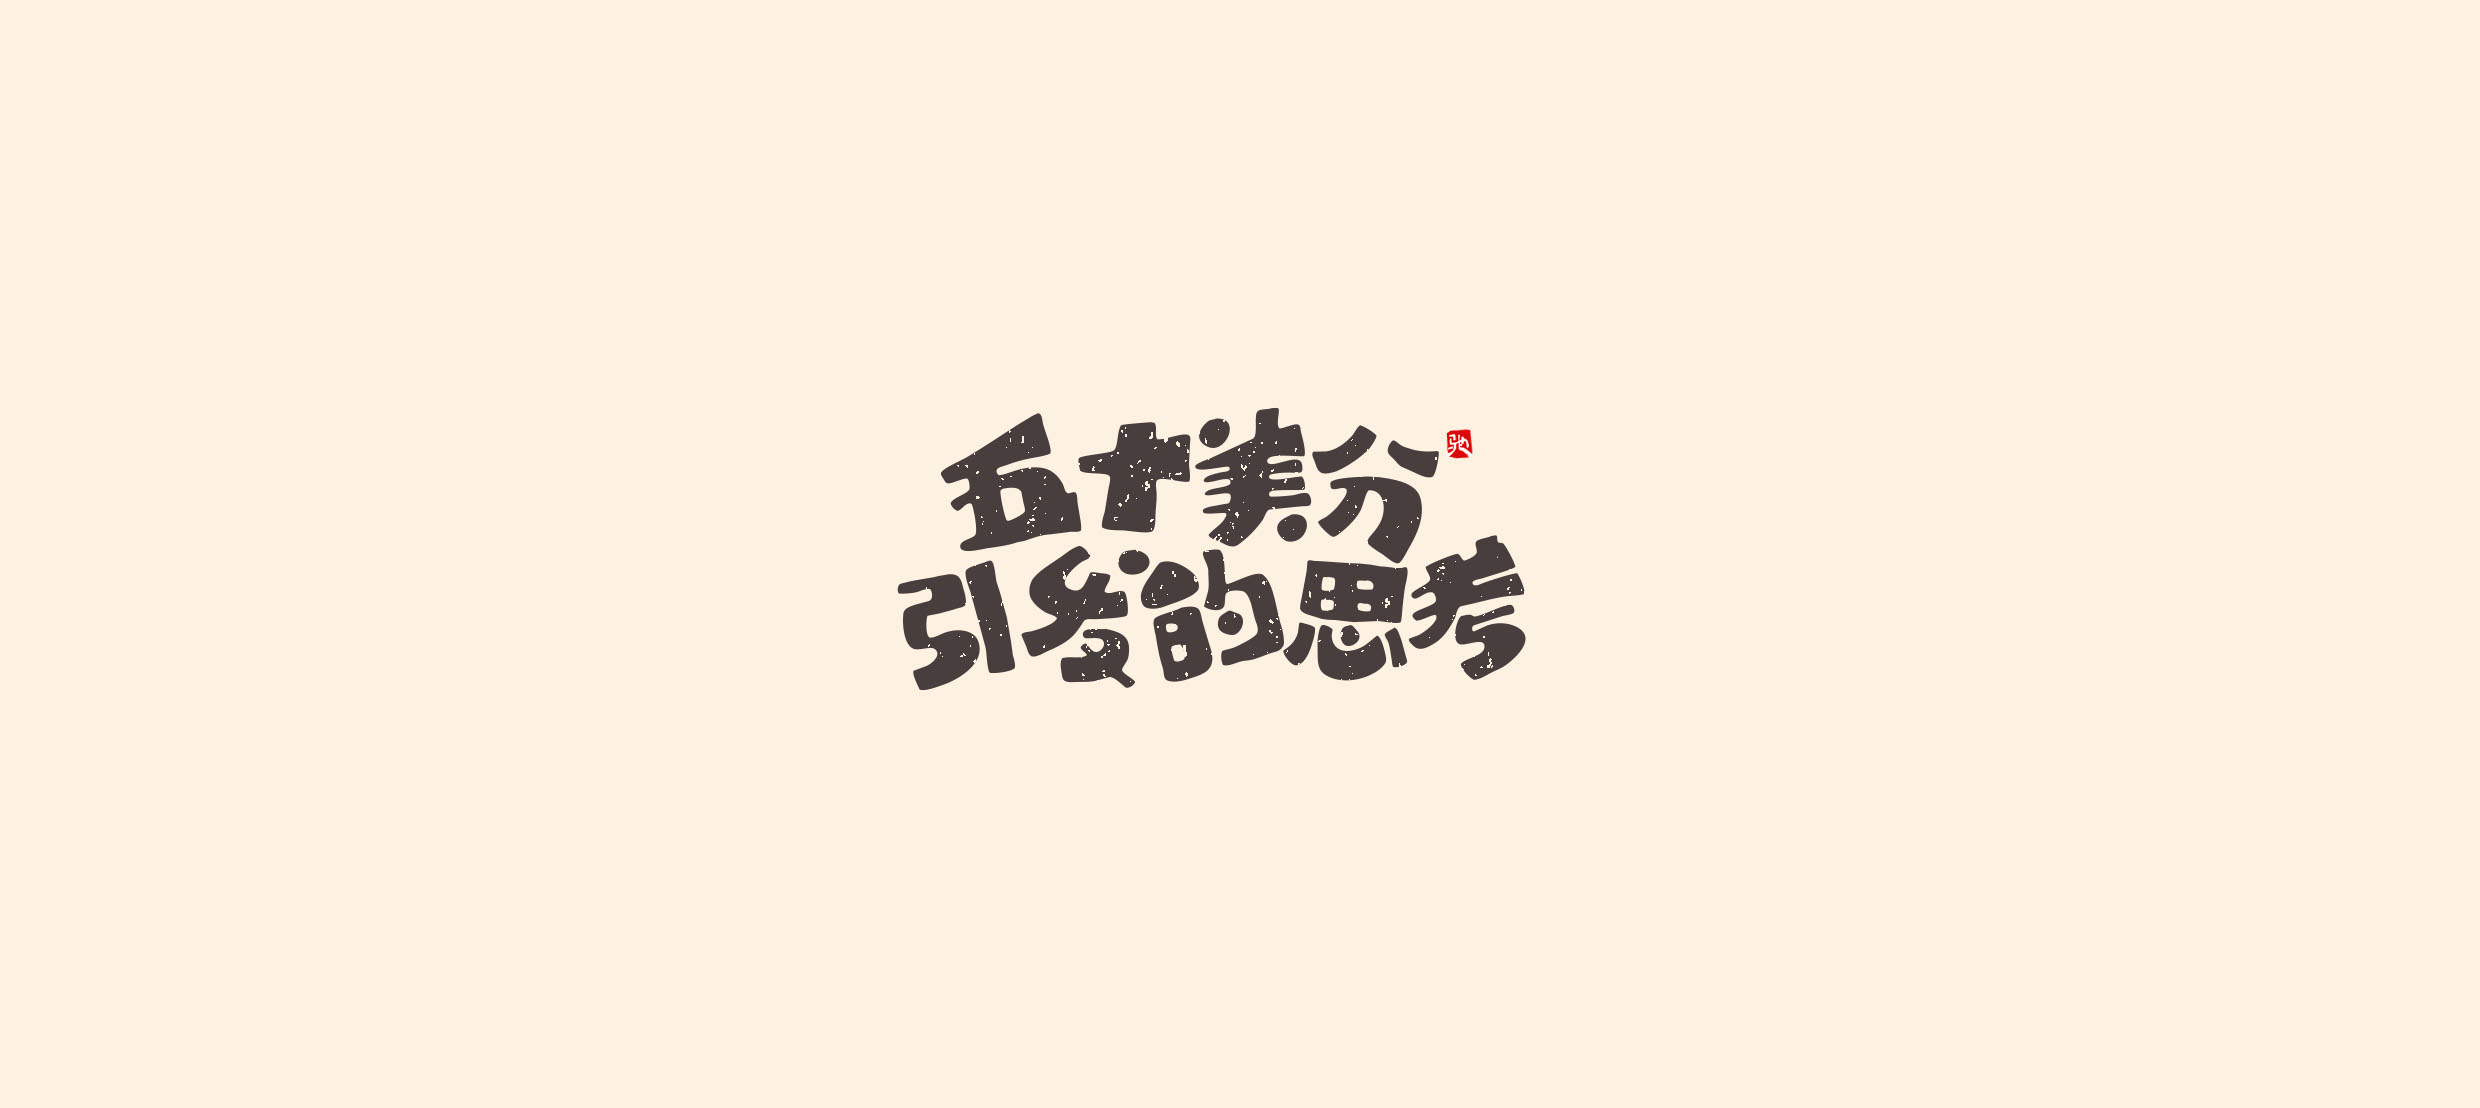 23P Collection of the latest Chinese font design schemes in 2021 #.661